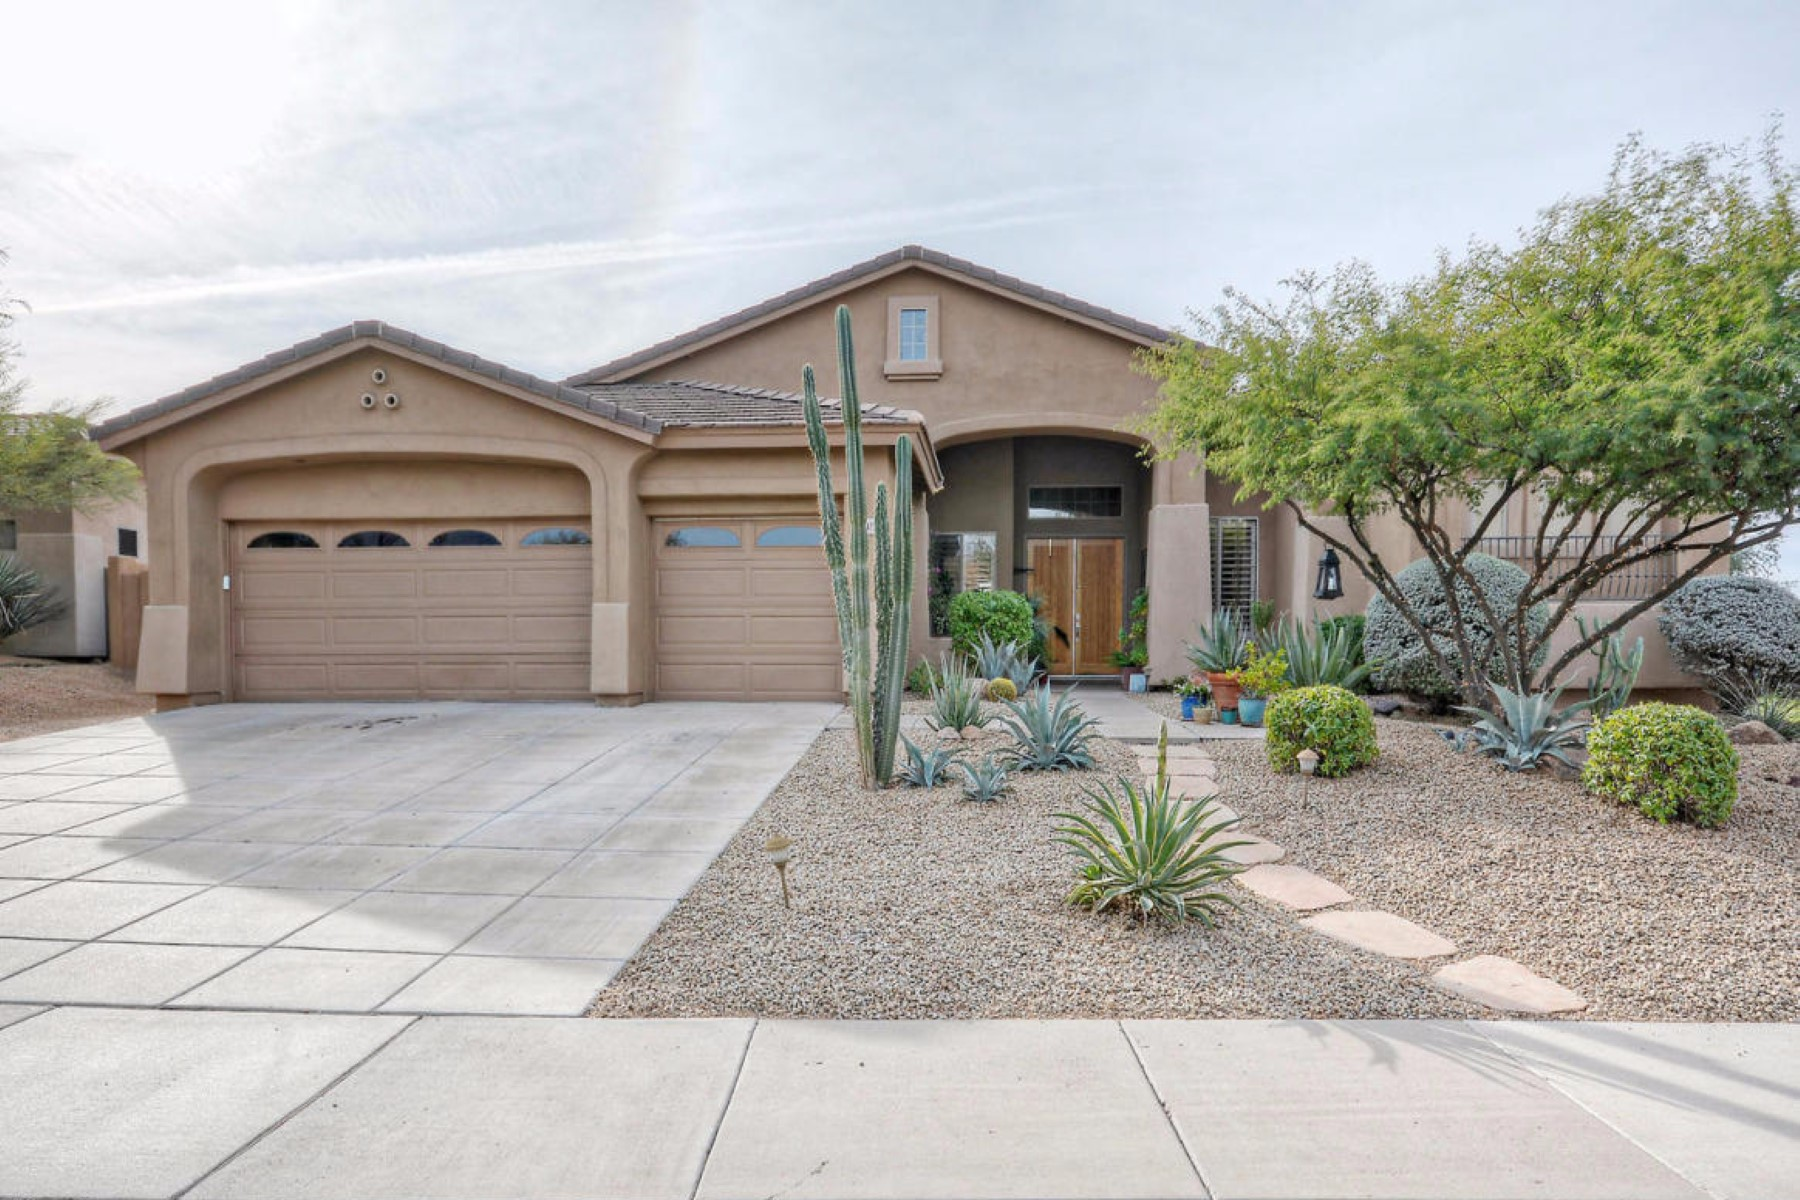 Maison unifamiliale pour l Vente à Warm and sophisticated home in the much loved community of Los Alisos 5745 E NIGHT GLOW CIR Scottsdale, Arizona 85266 États-Unis